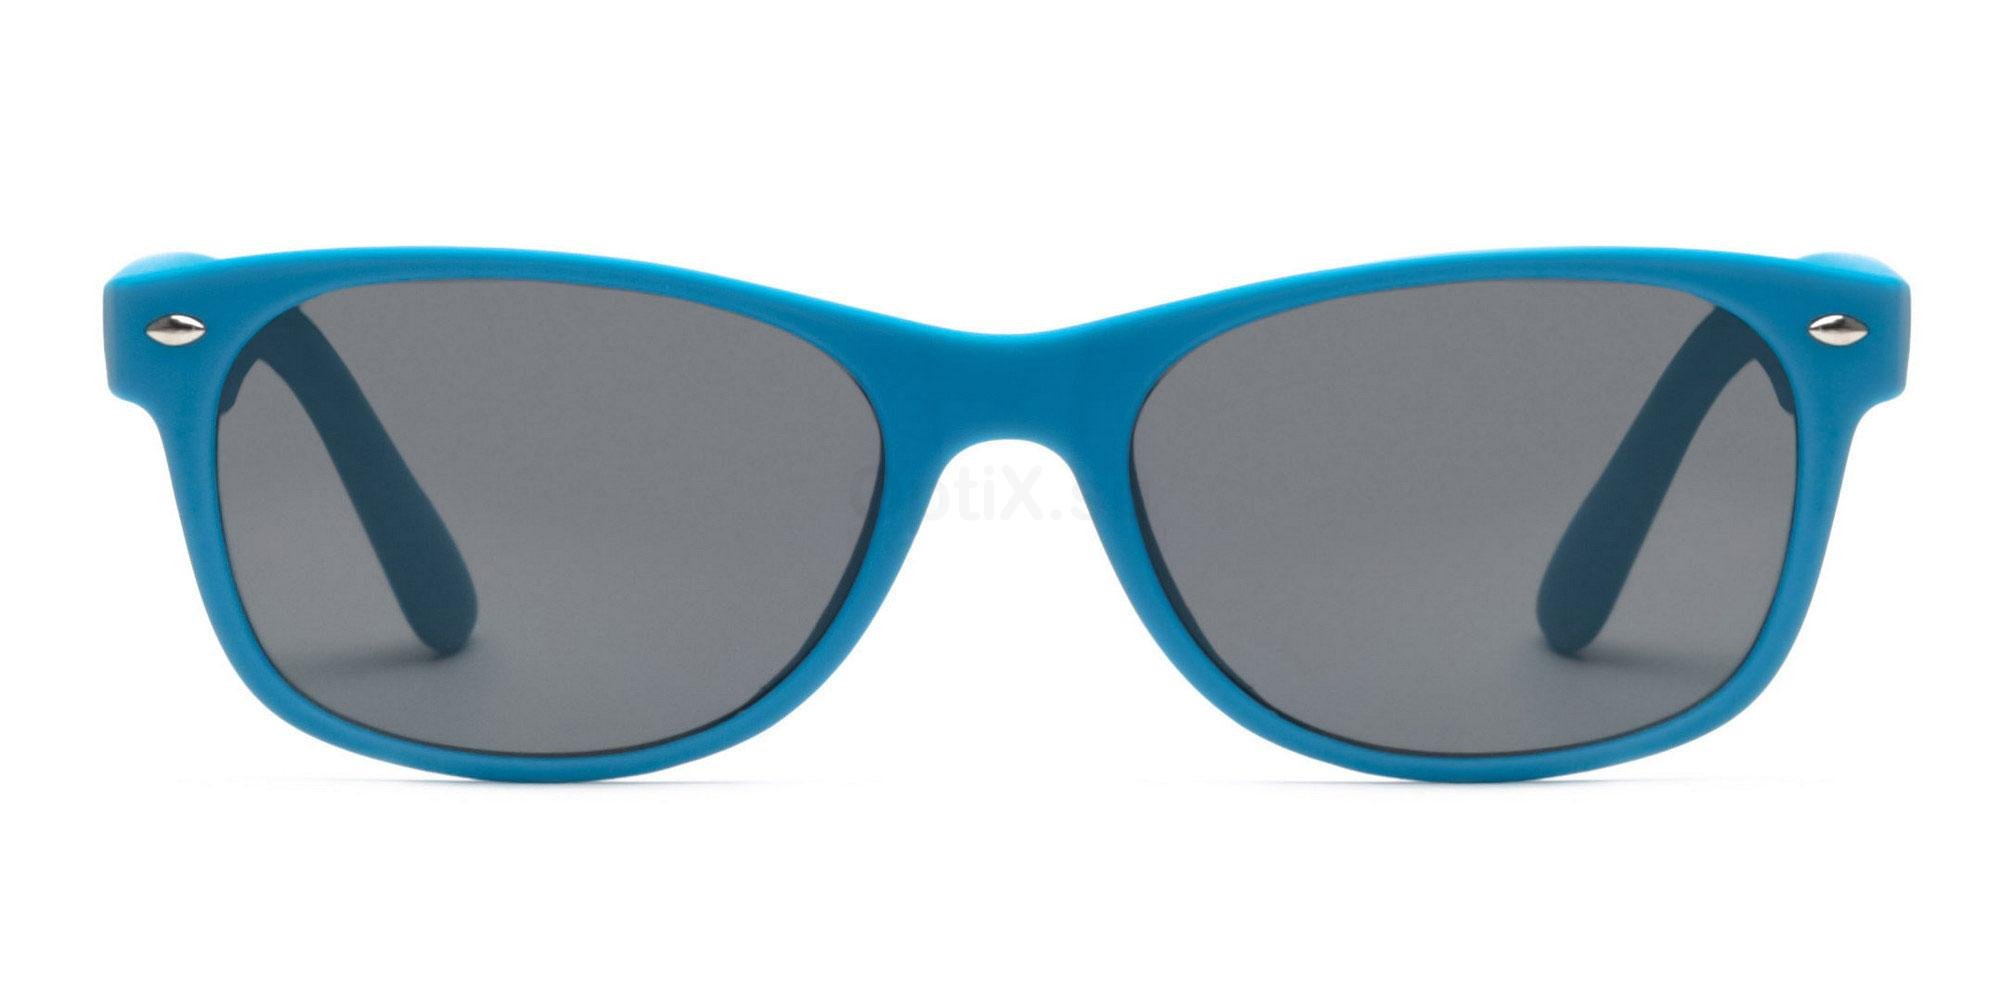 Light Blue S8122 - Light Blue (Sunglasses) , Savannah